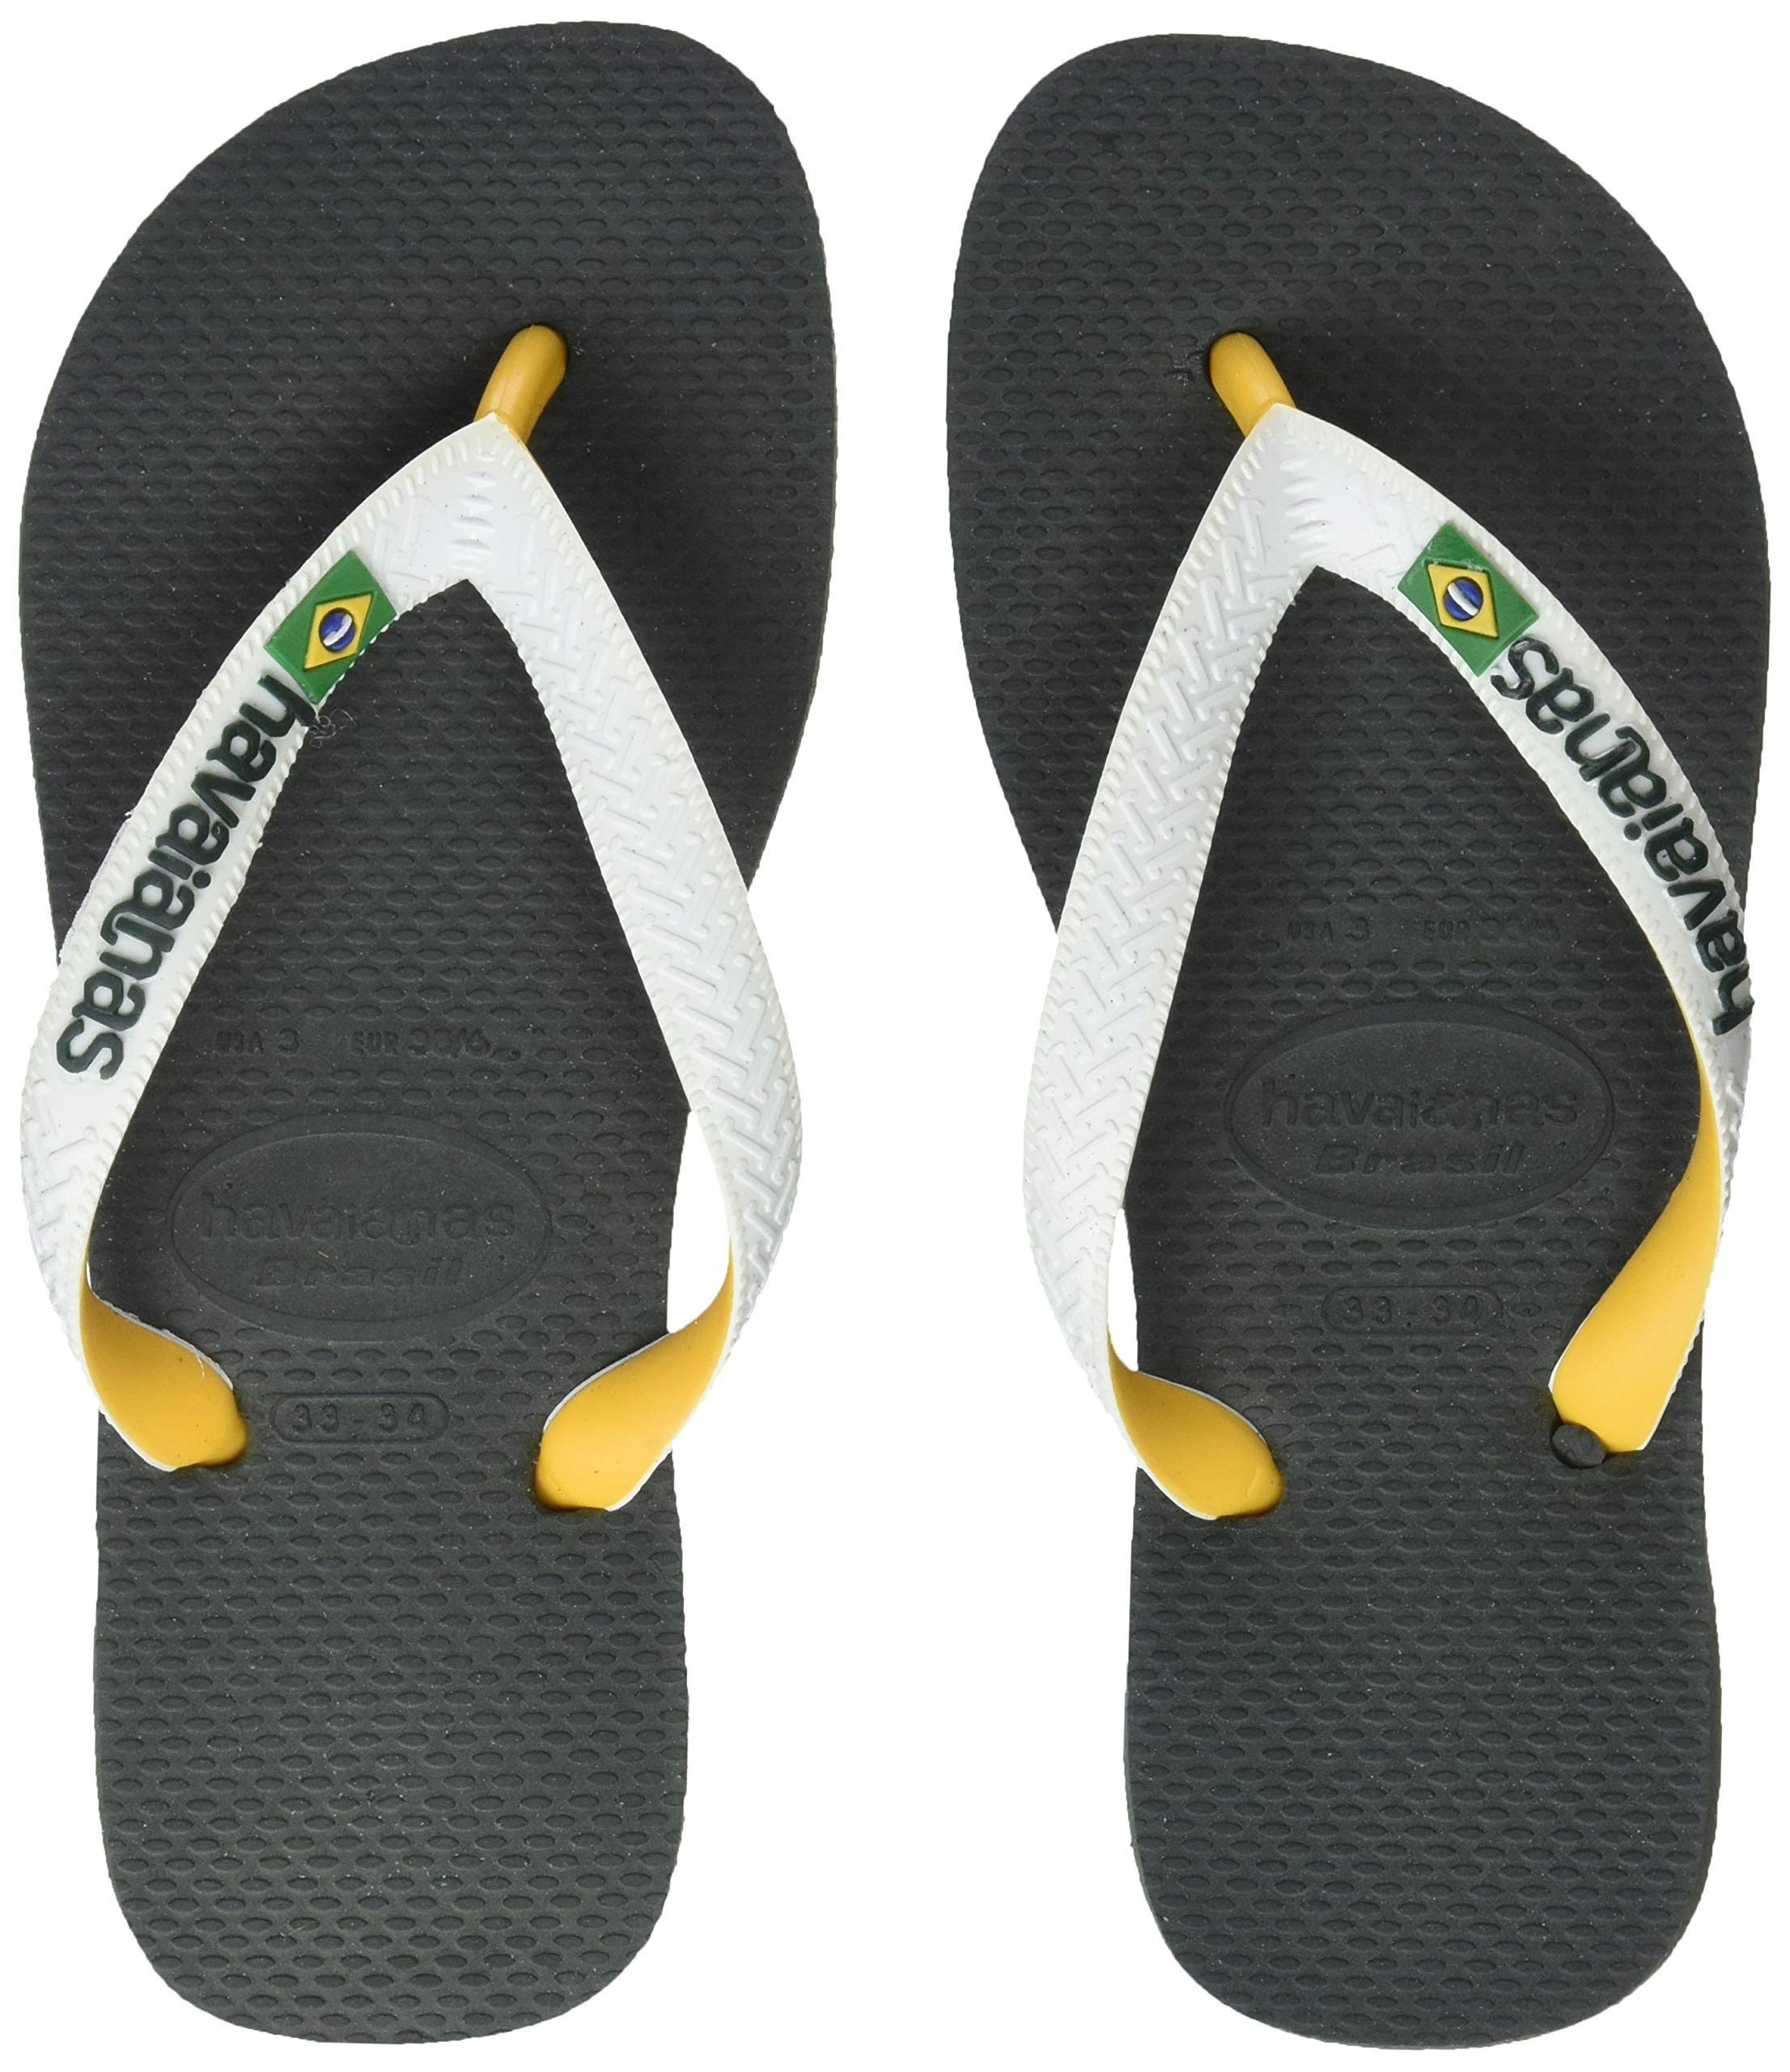 7dc637042e5 Havaianas Unisex Adults  Brasil Mix Flip Flops - Johnson Emporium